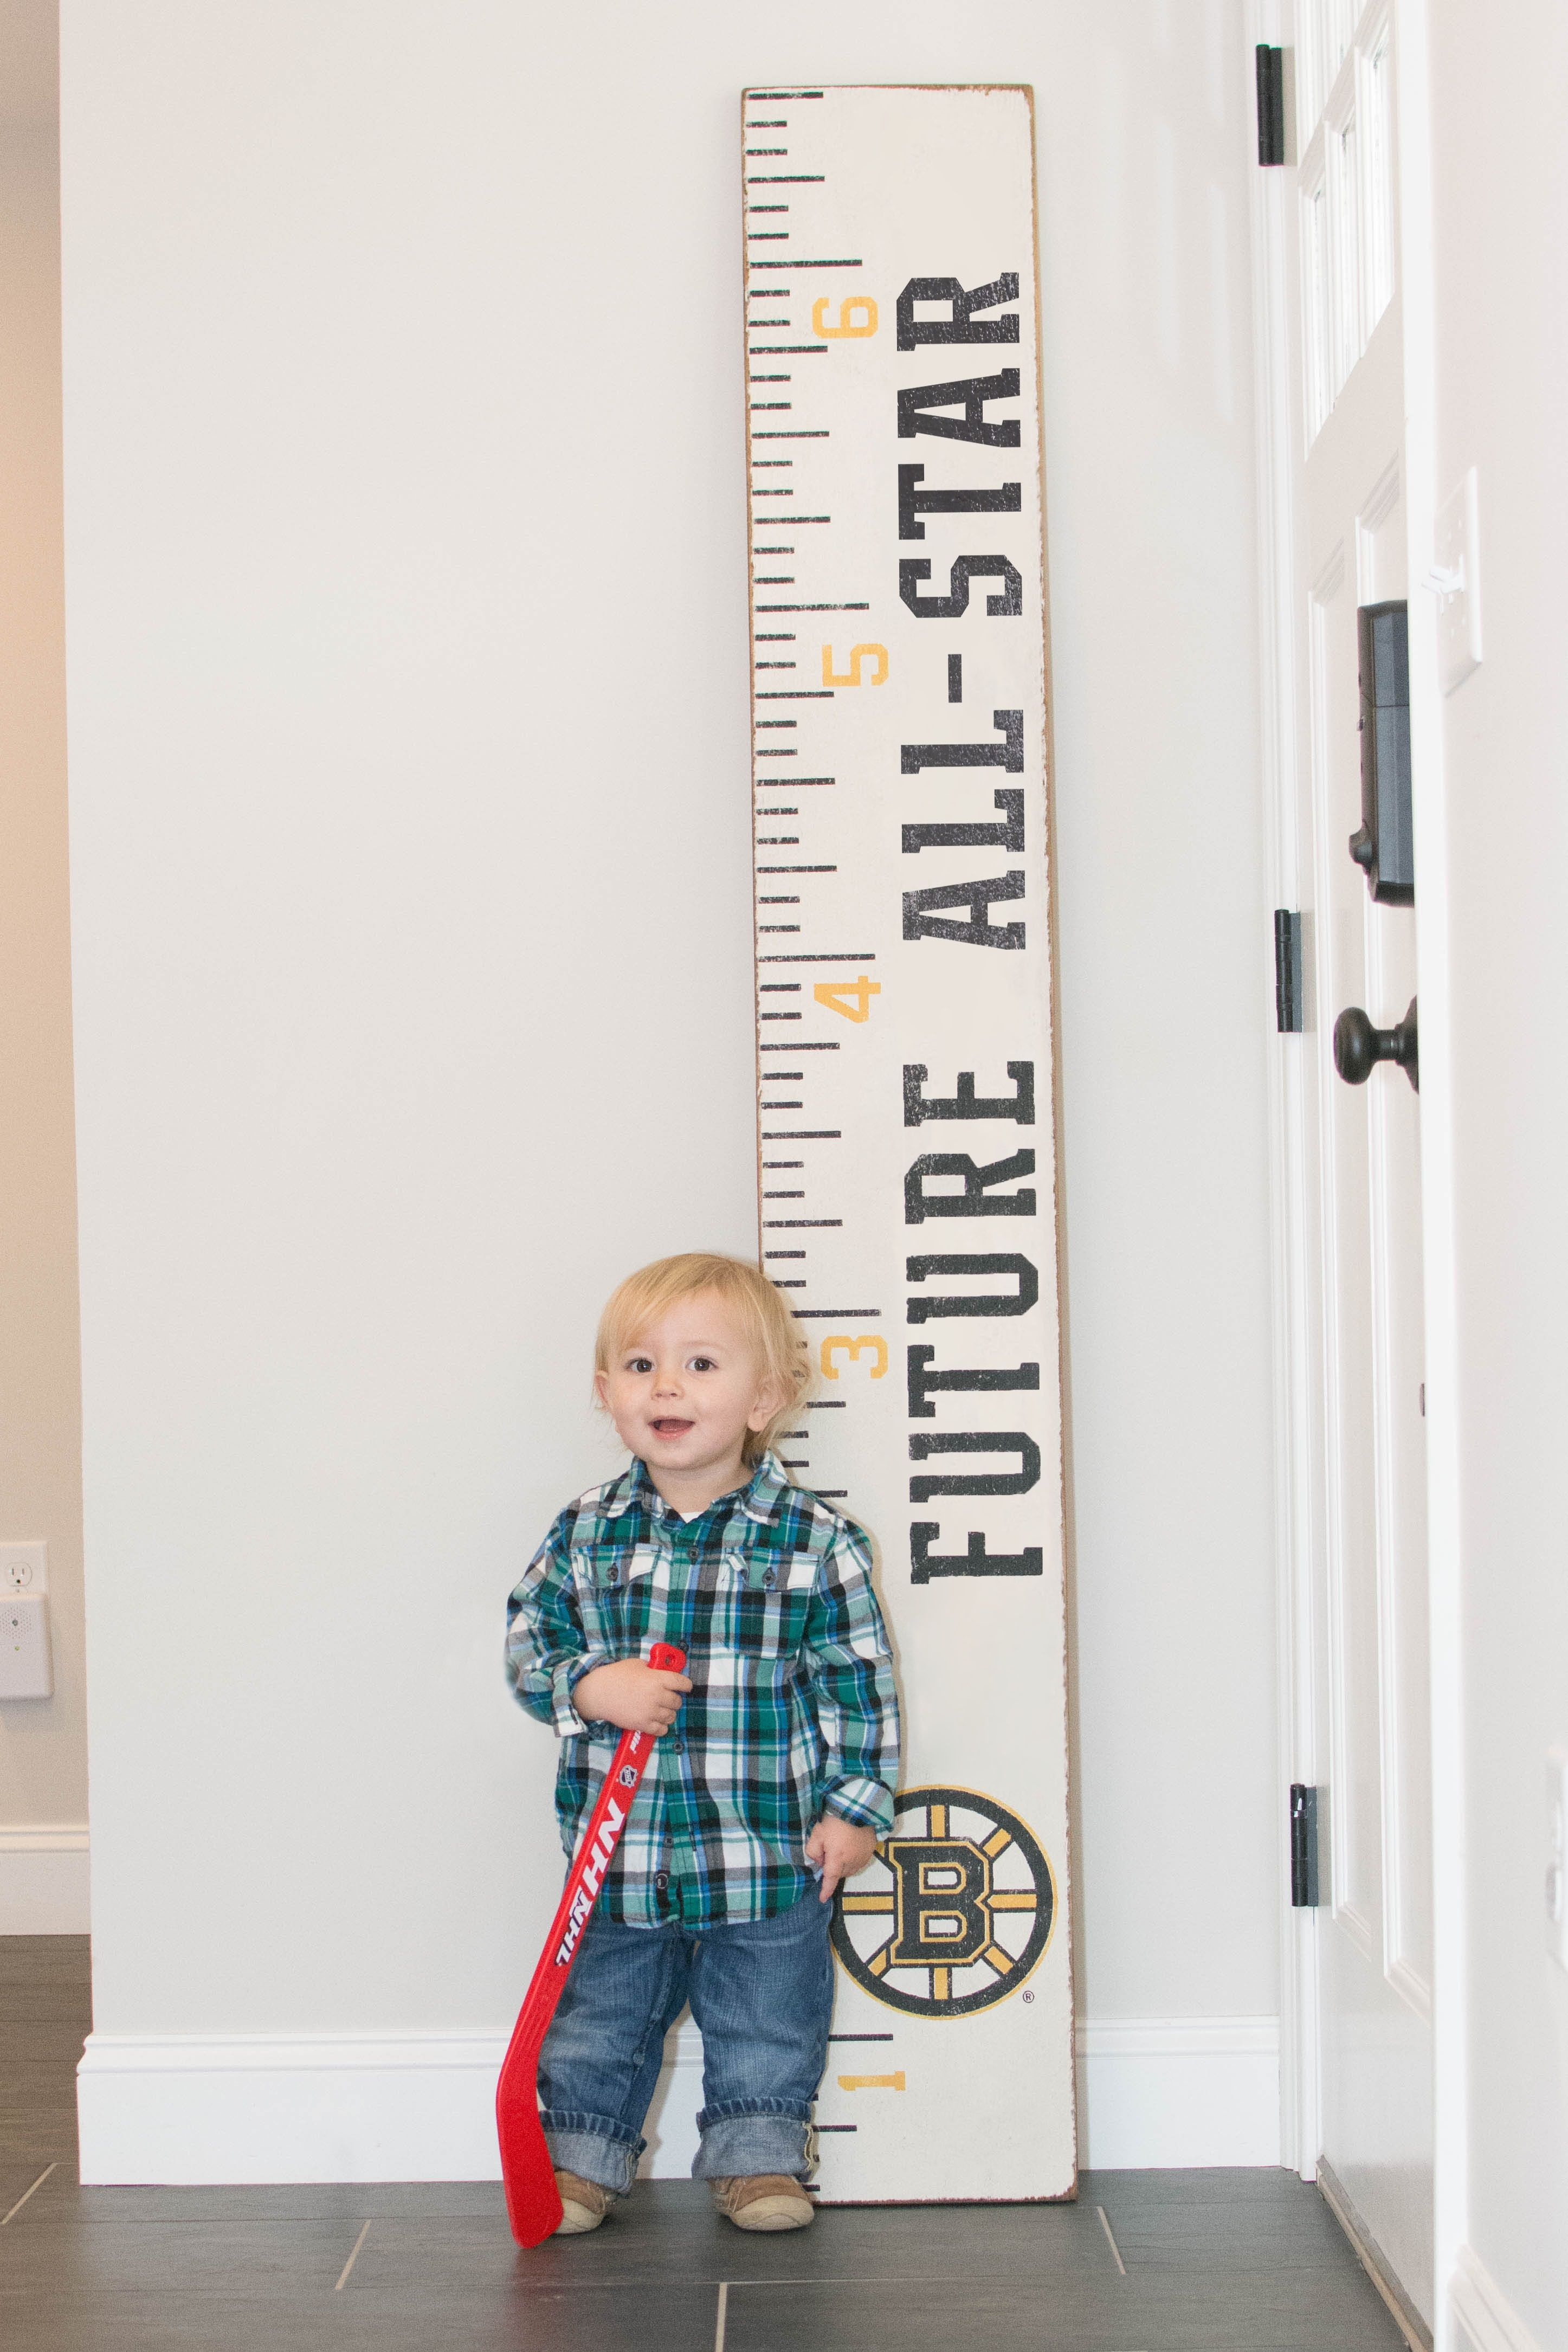 Decorate a child's bedroom with this Rustic Marlin growth chart for the little Bruins Fan in your life.